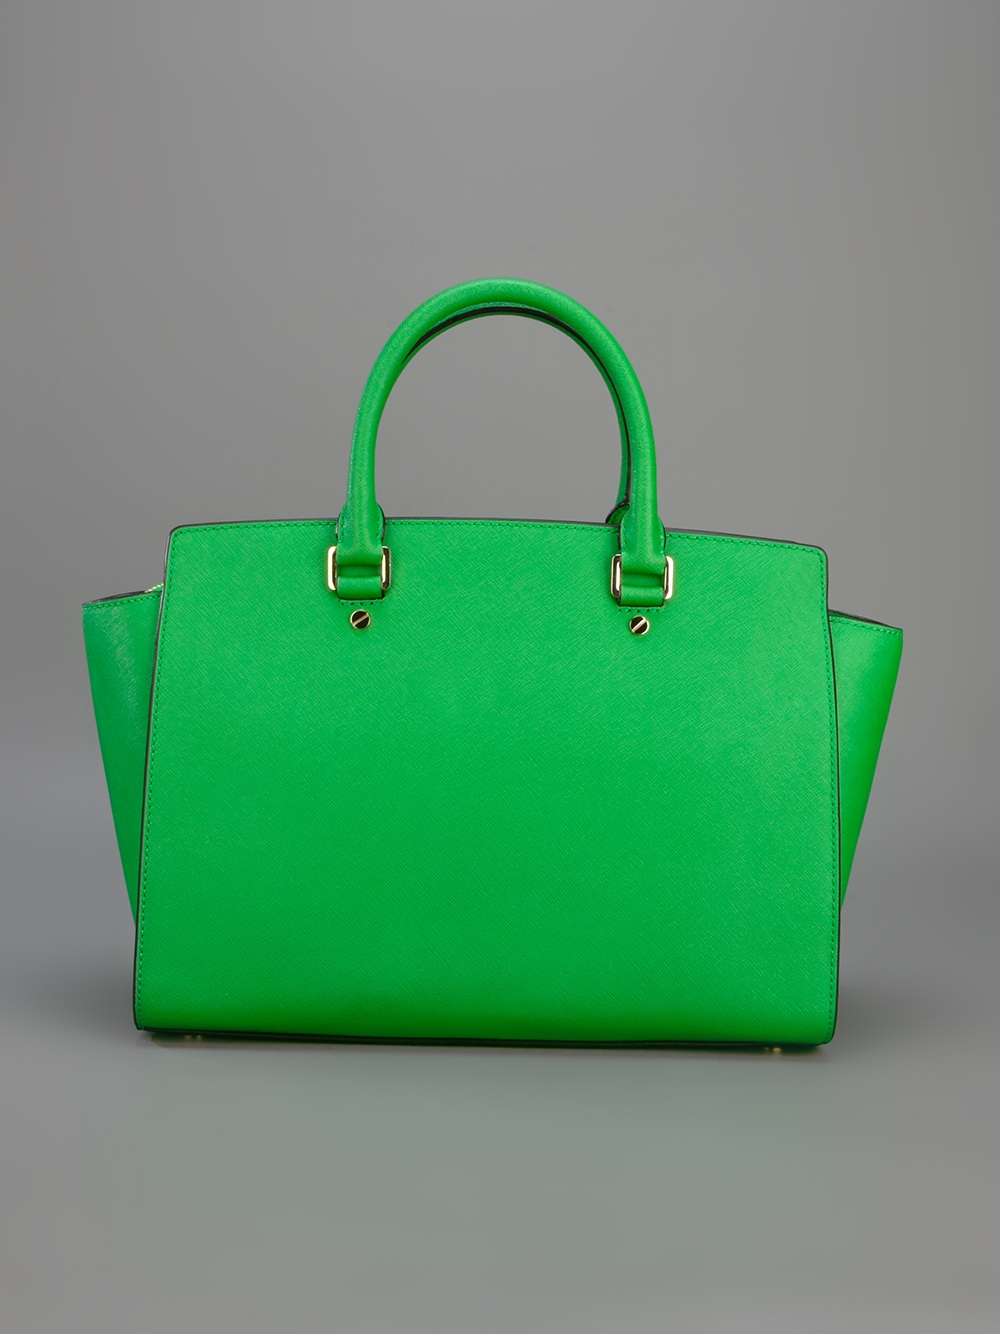 lyst michael kors selma shopper tote in green. Black Bedroom Furniture Sets. Home Design Ideas